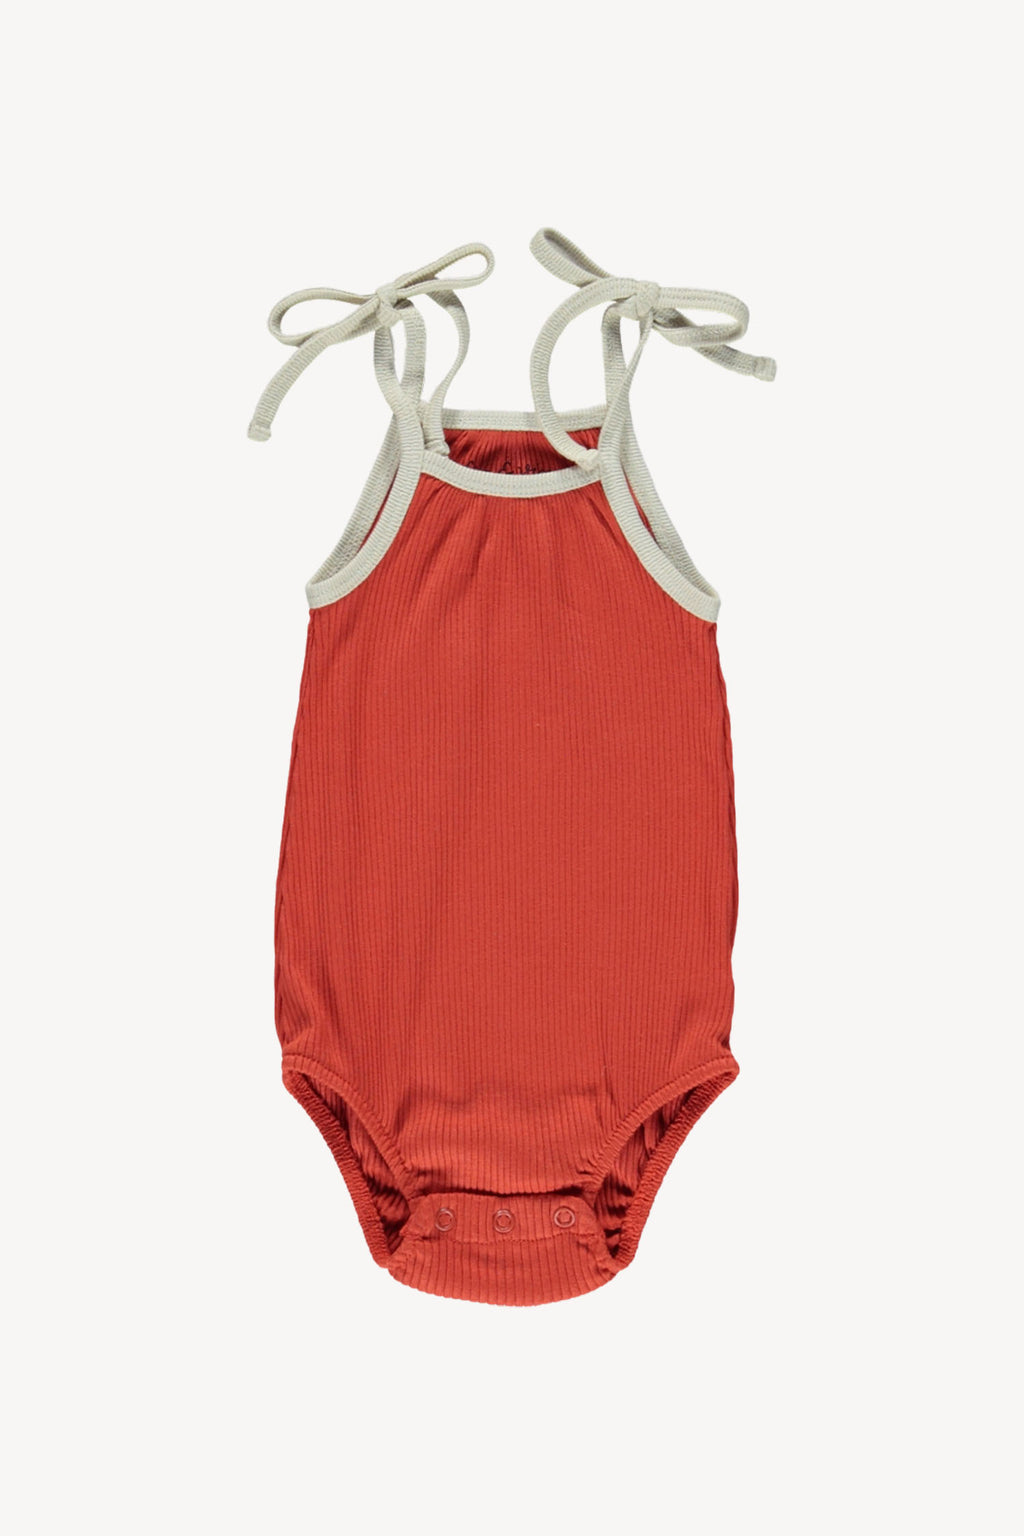 Fin and Vince - Bubble Tie Onesie (Brick Red) - Only 3/6